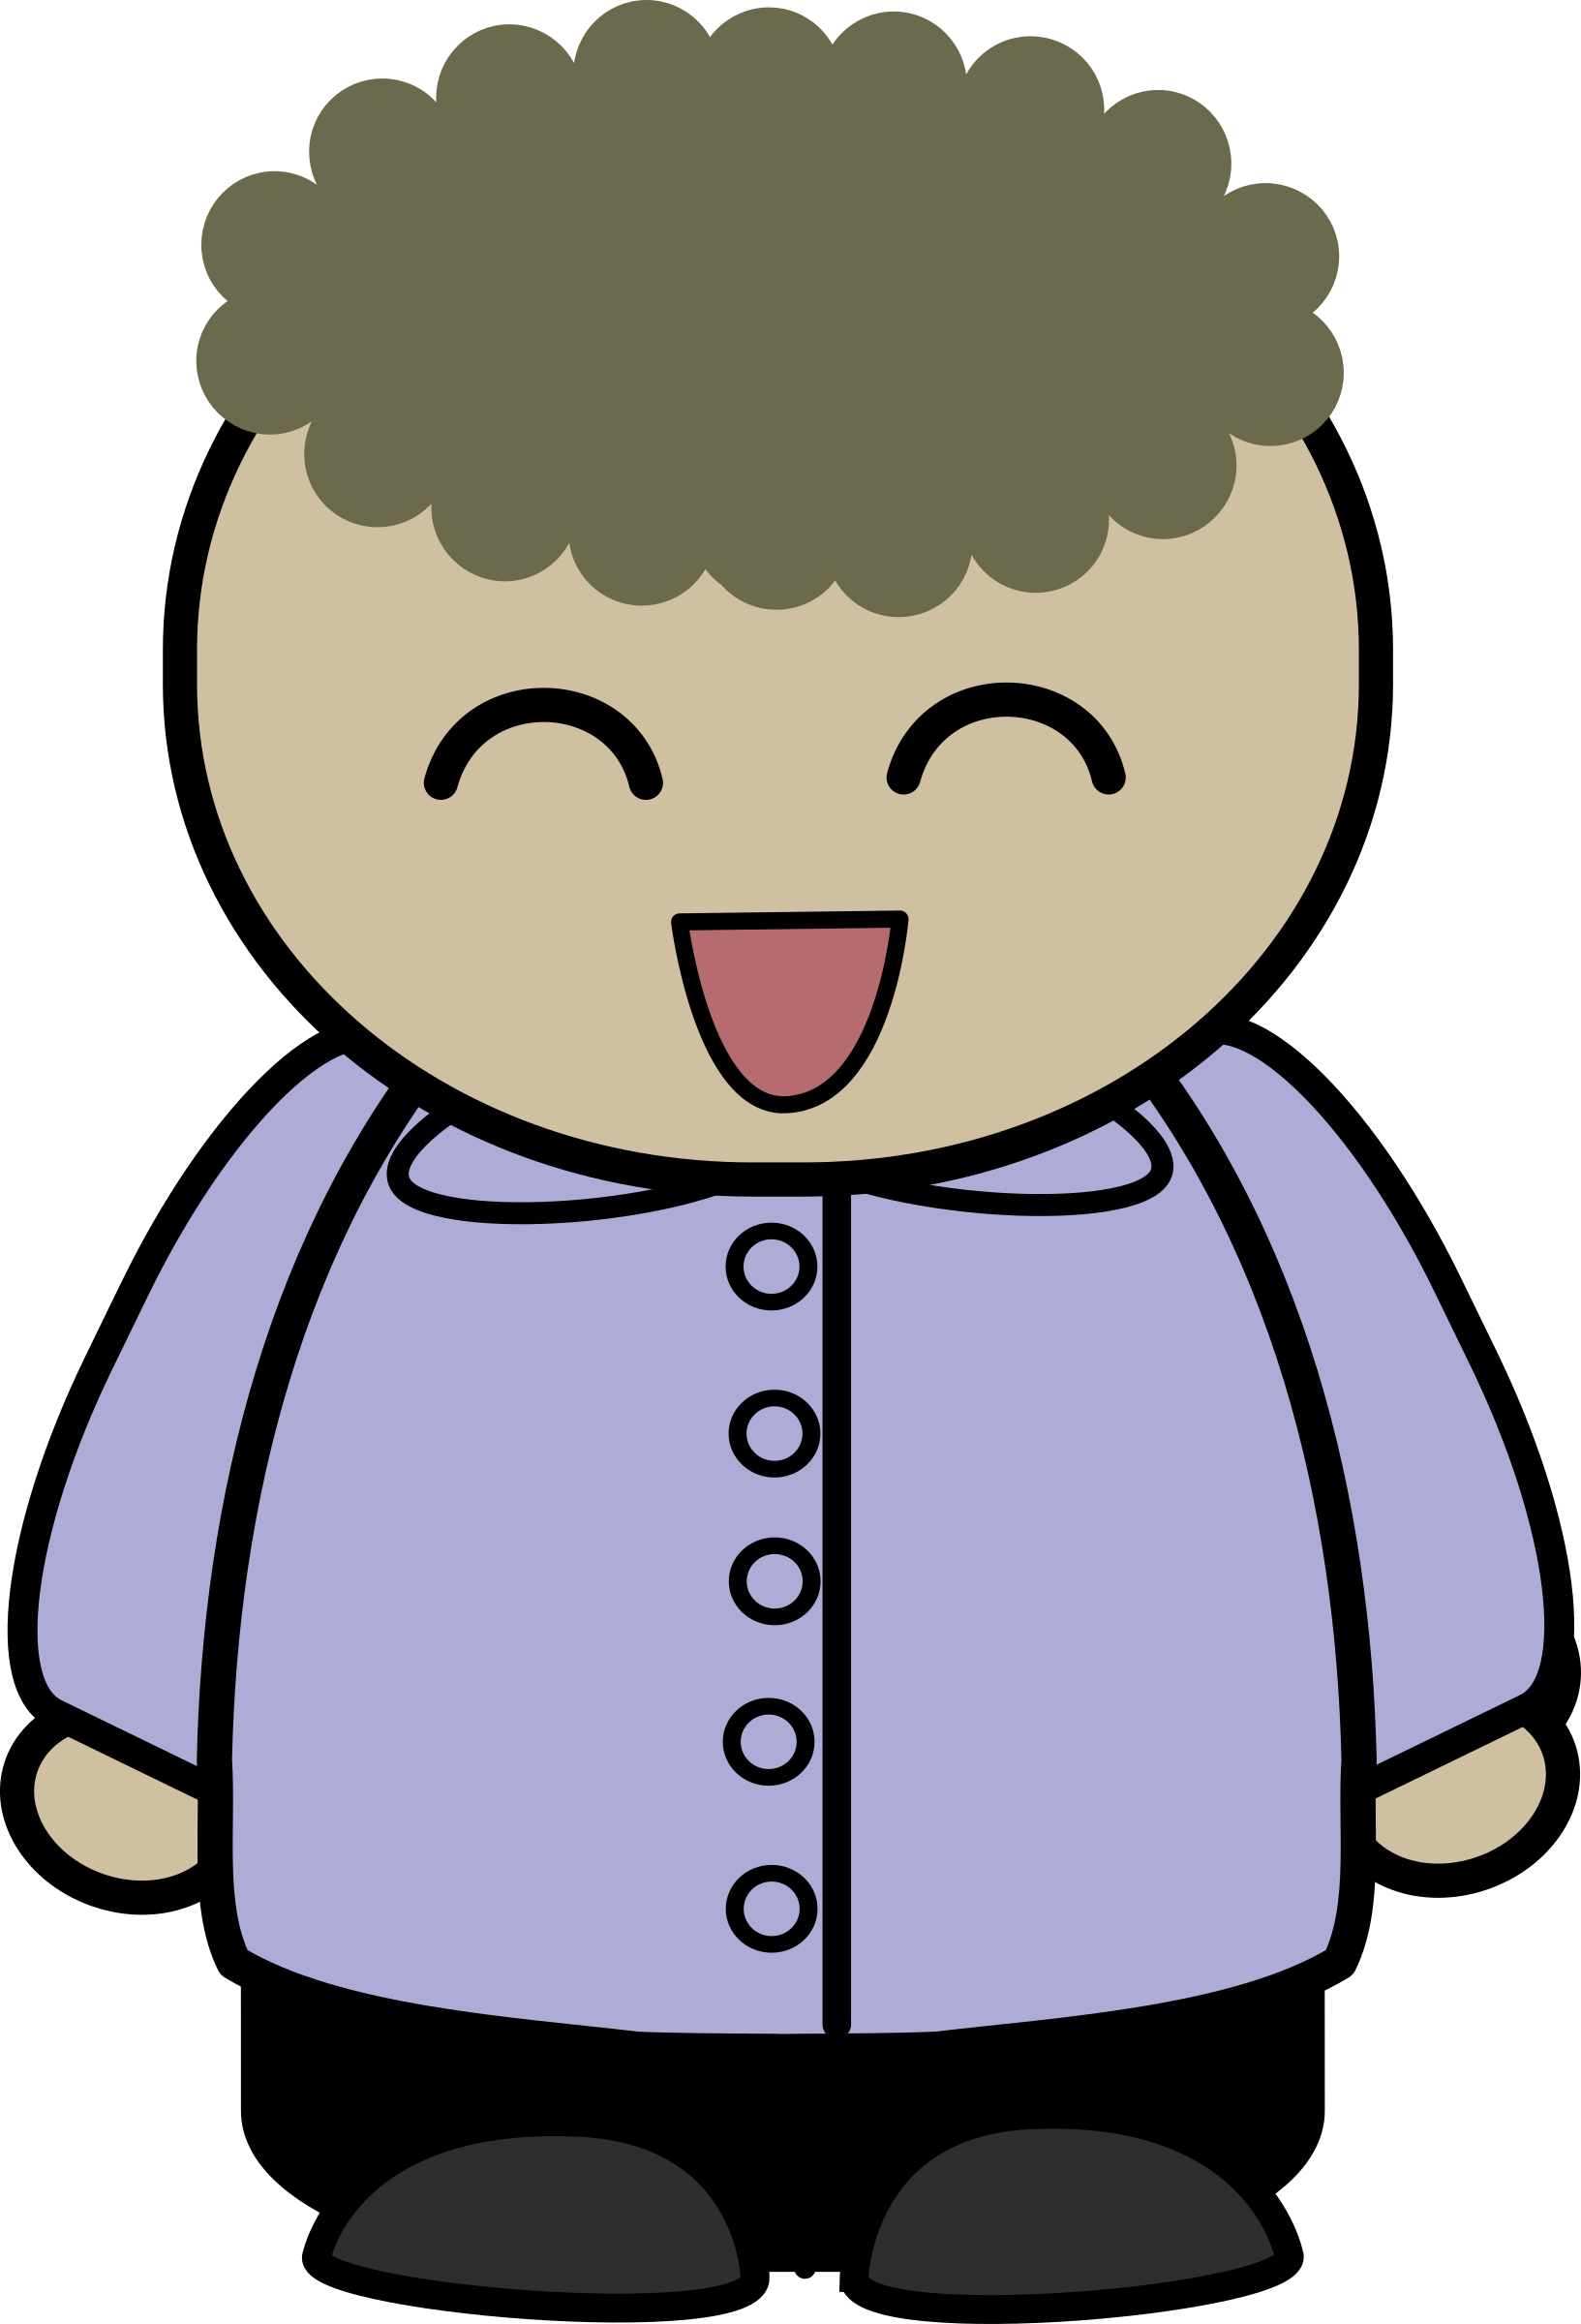 Character clipart clip art. Mix and match brad